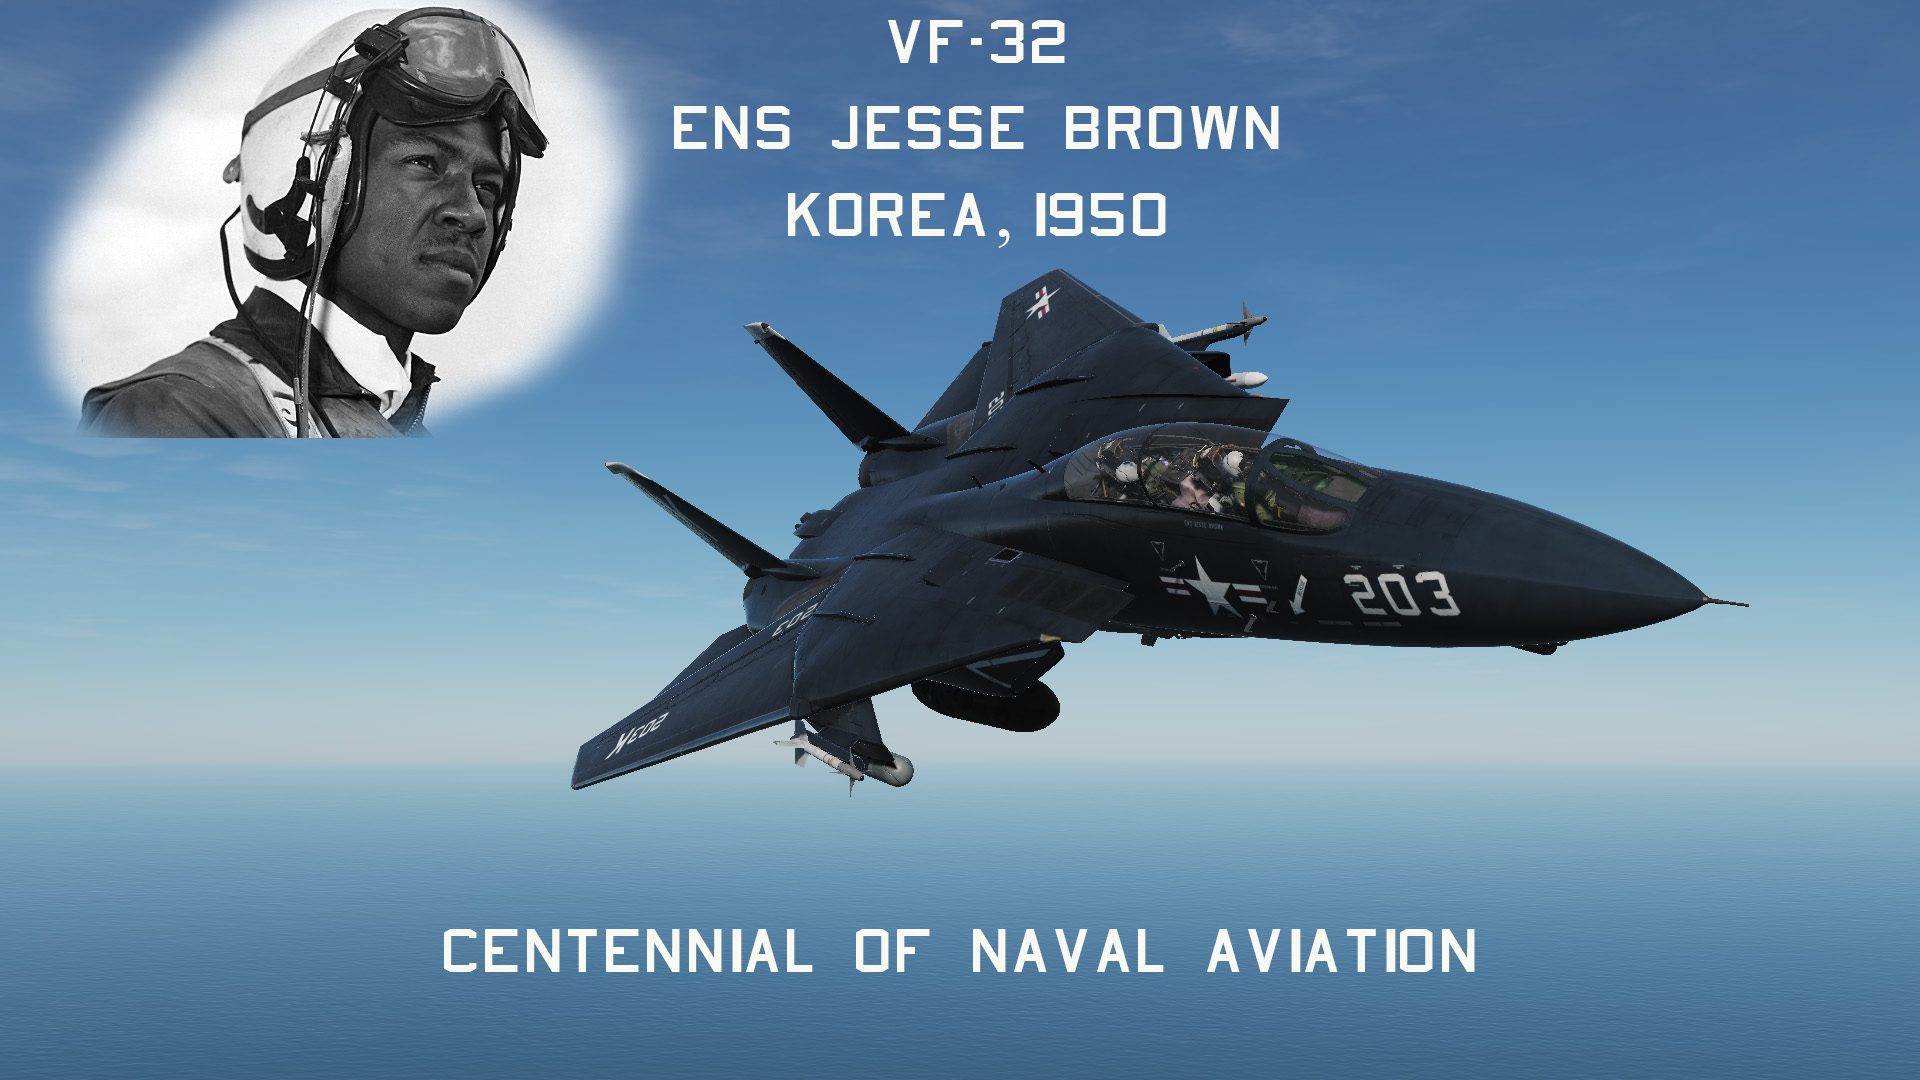 VF-32 CoNA - 203K of ENS Jesse Brown (Semi-Fictional)